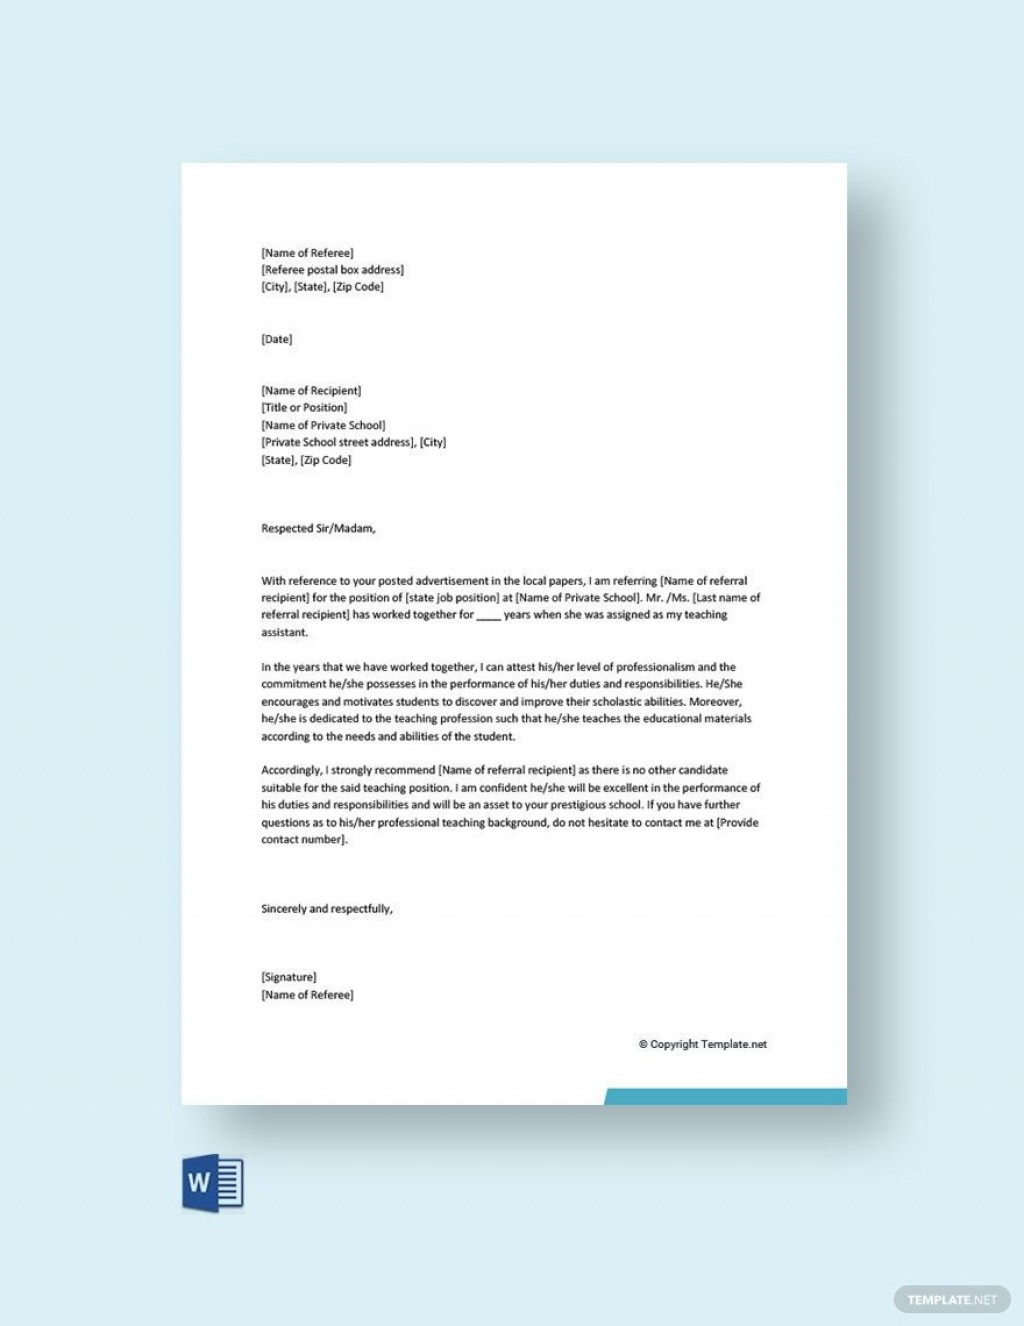 003 Fascinating Free Reference Letter Template Word Idea  For Employment PersonalLarge